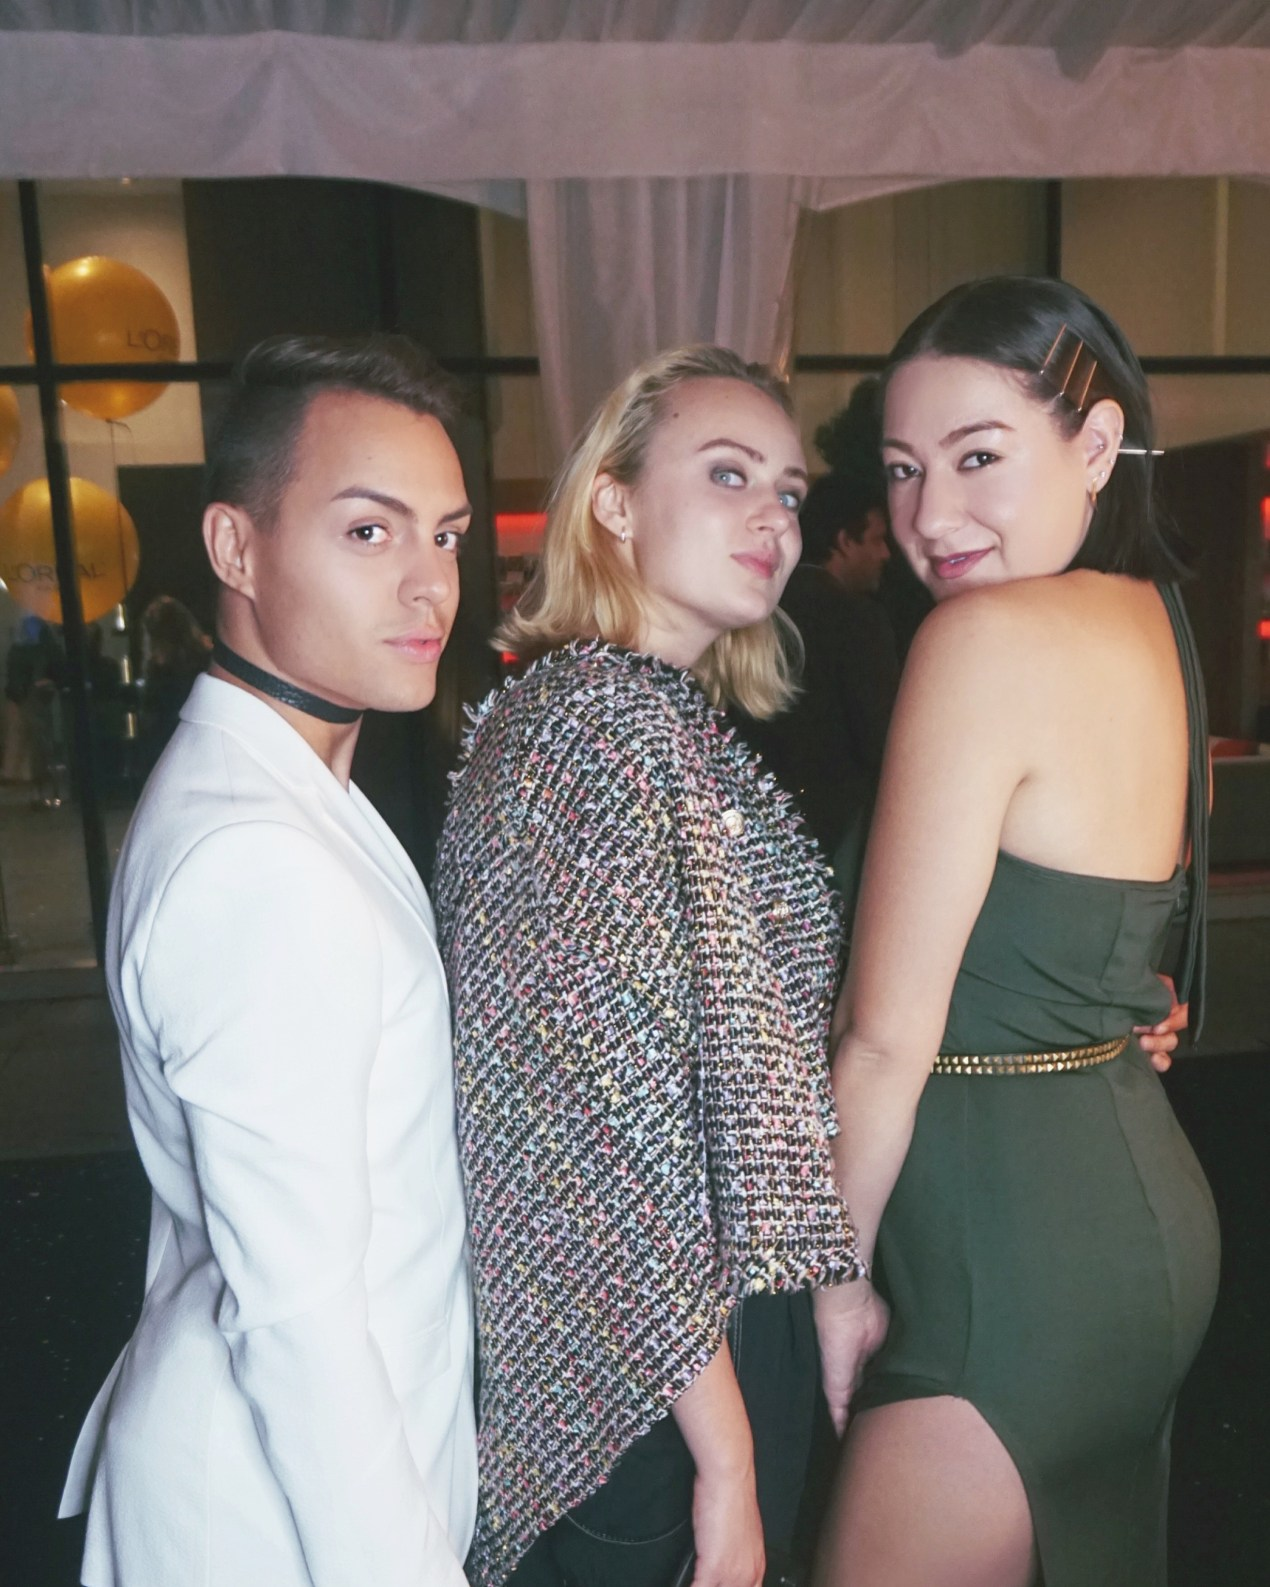 loreal gold glam toronto film festival 2016 party melina morry the lady-like leopard toronto fashion blogger atelier guarin